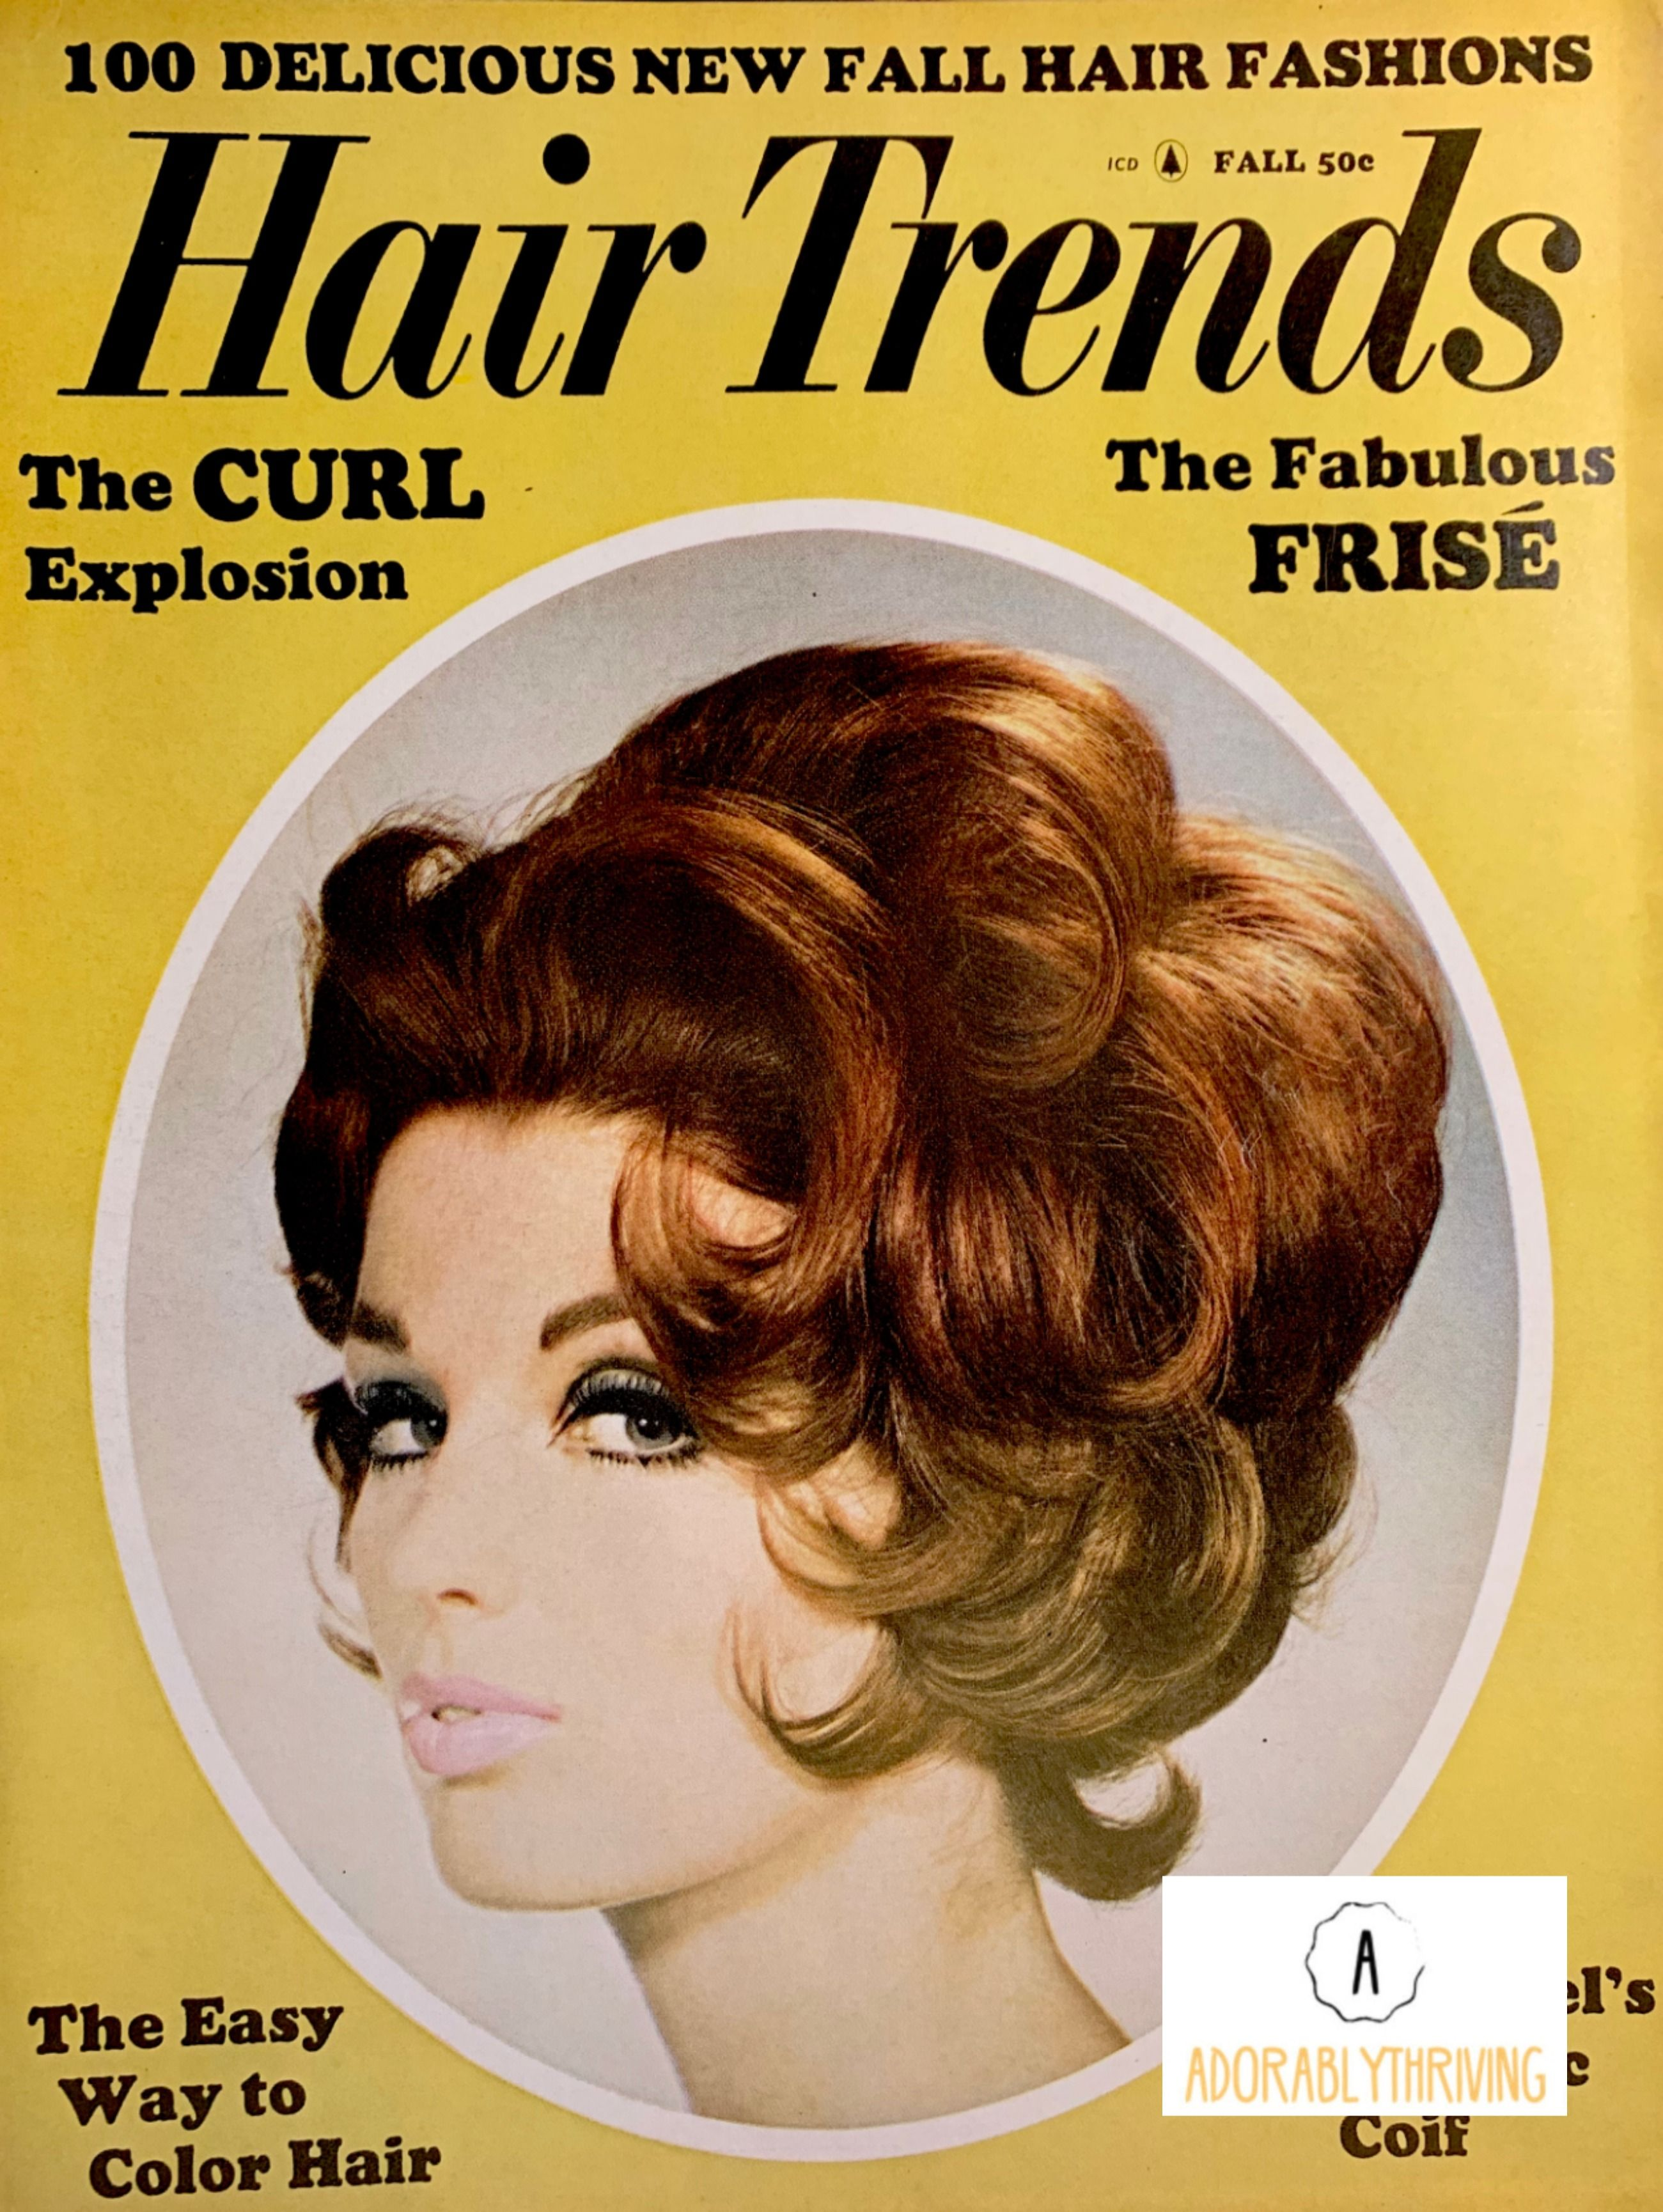 1960 S And 1970 S Vintage Hair Magazines Hair Trends Etsy In 2020 Hair Magazine Vintage Hairstyles Hair